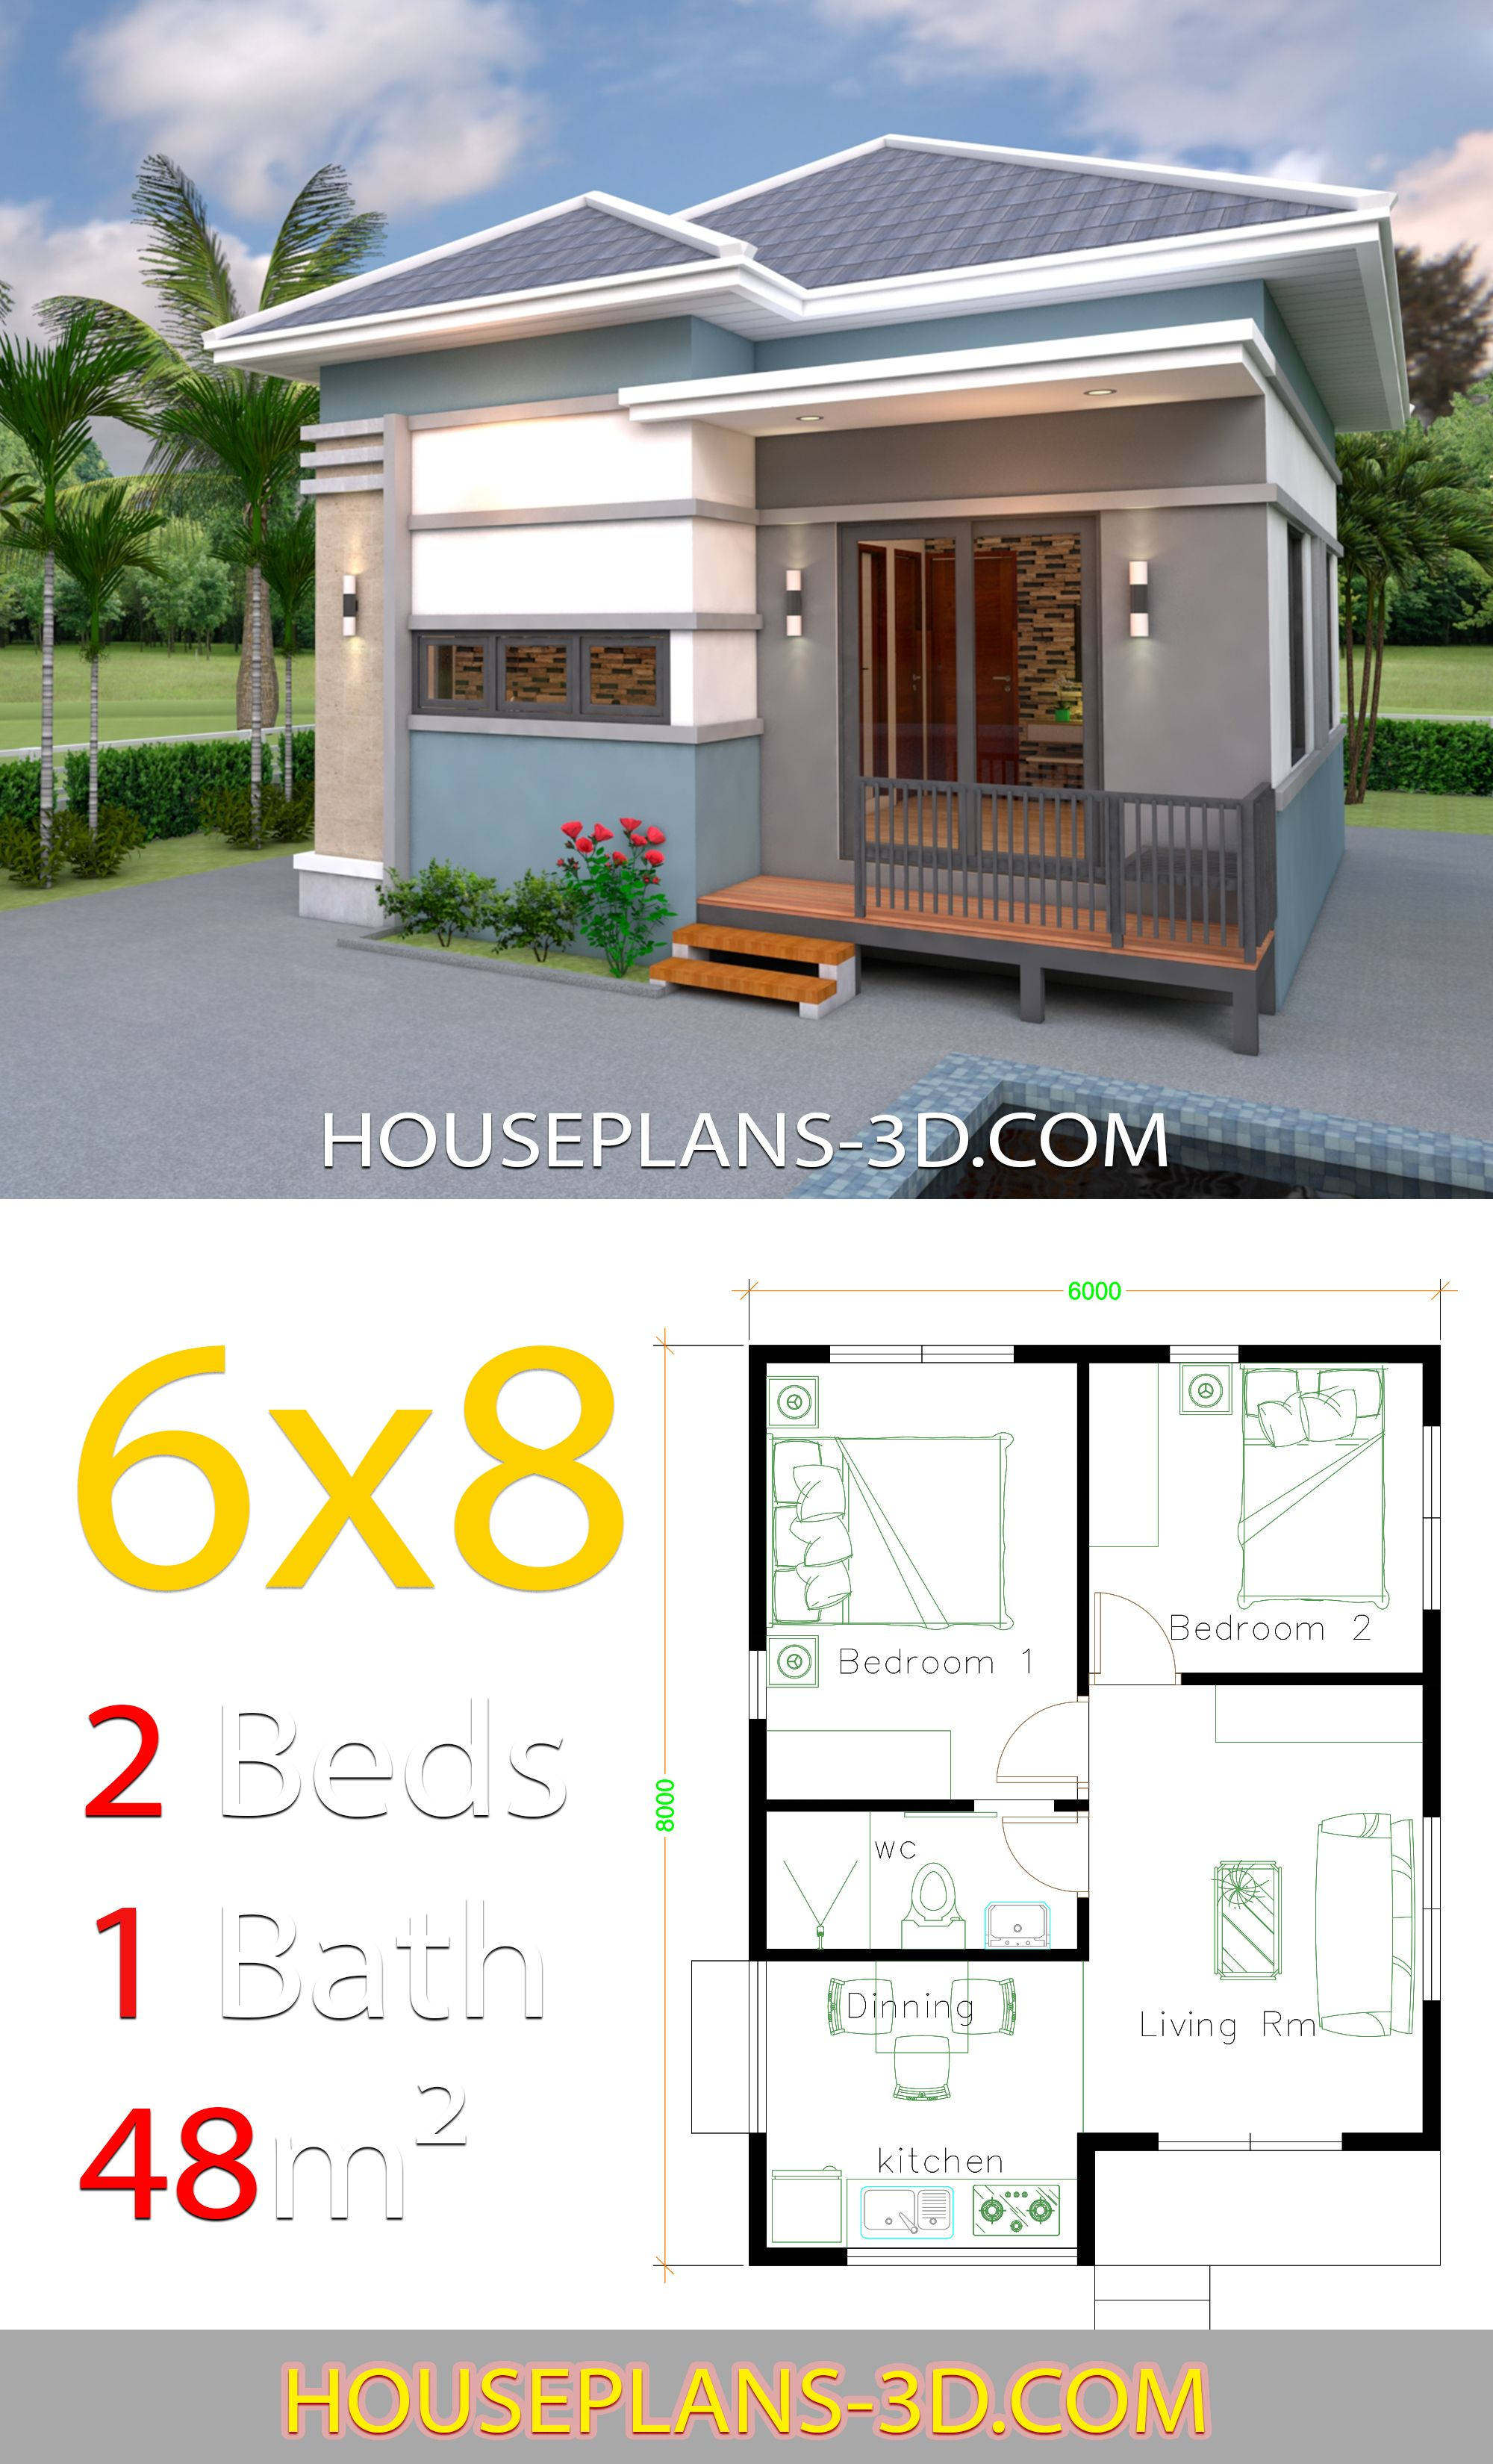 House Design 6x8 With 2 Bedrooms Hip Roof House Plans 3d Small House Design Plans Small House Exteriors House Plans